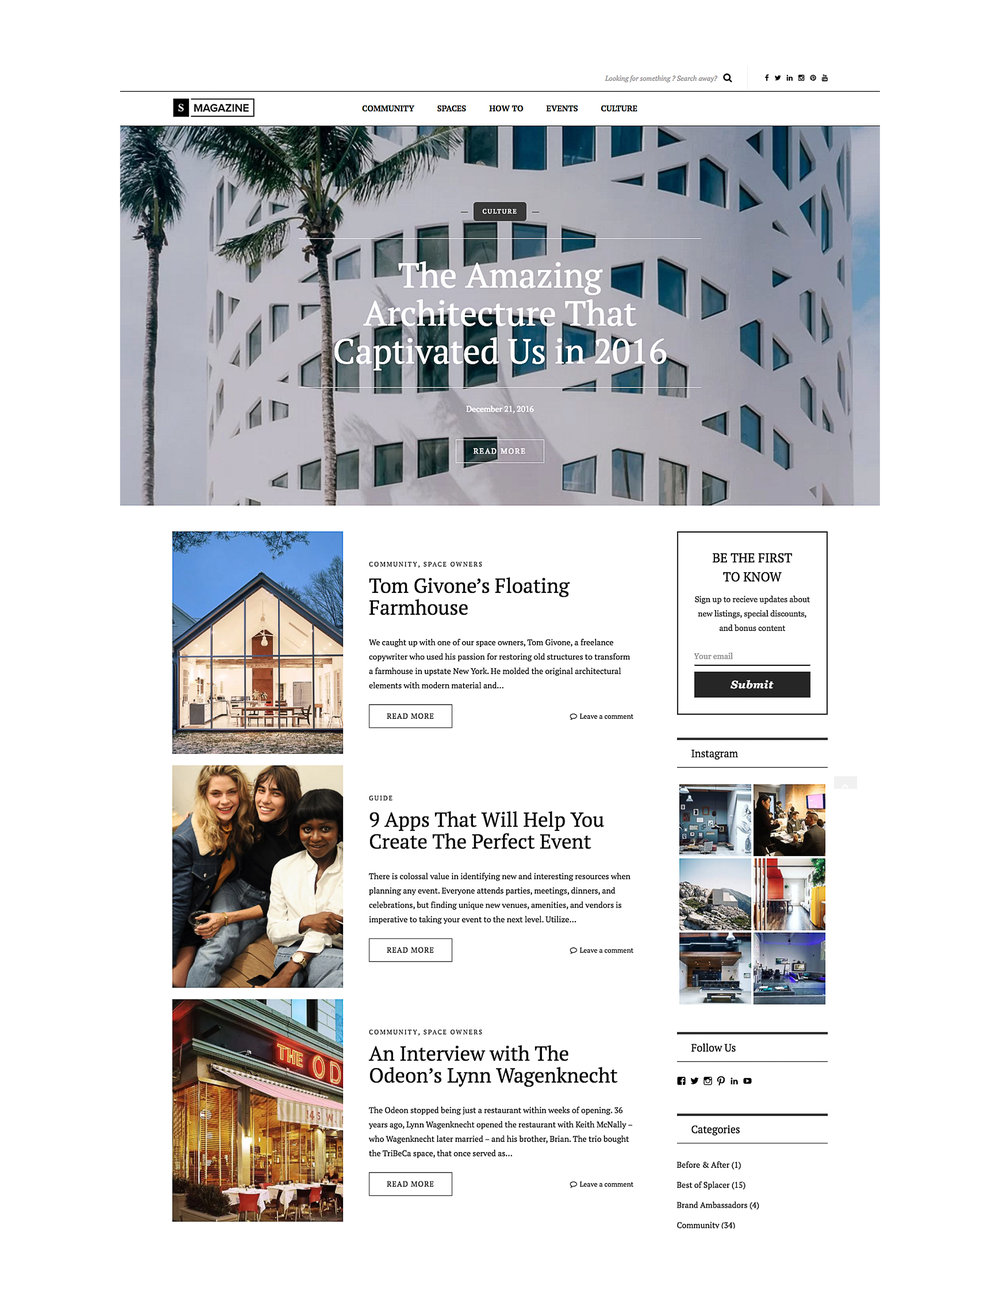 Web Design of Splacer's Magazine